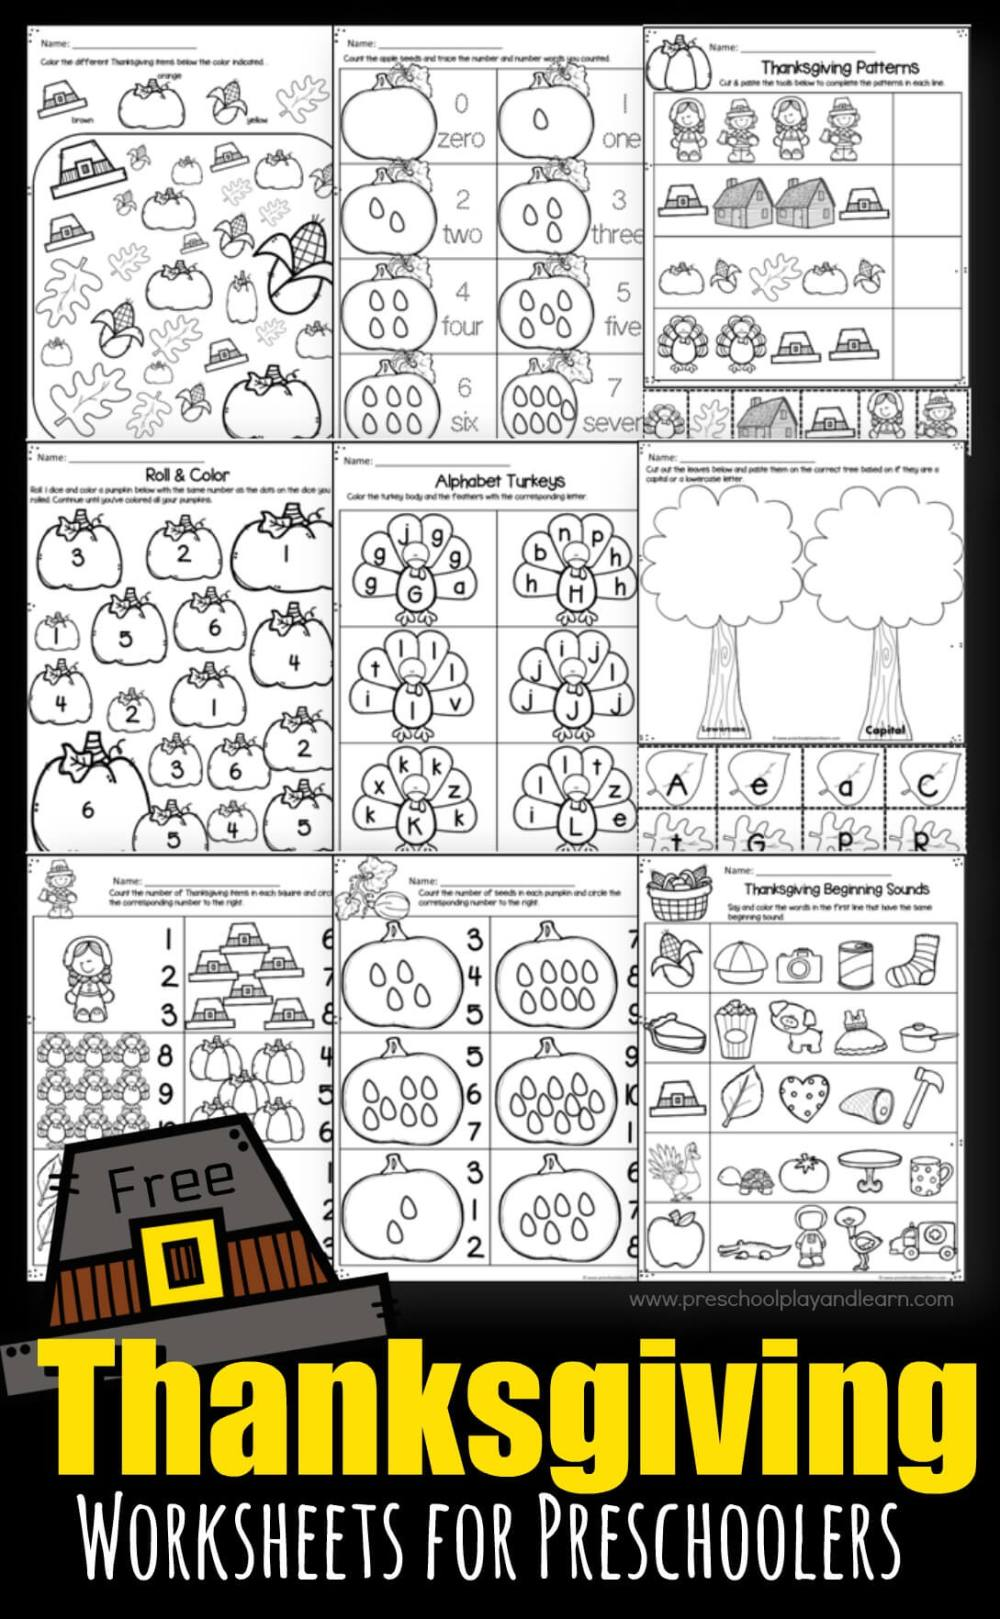 medium resolution of Thanksgiving Worksheets for Preschoolers